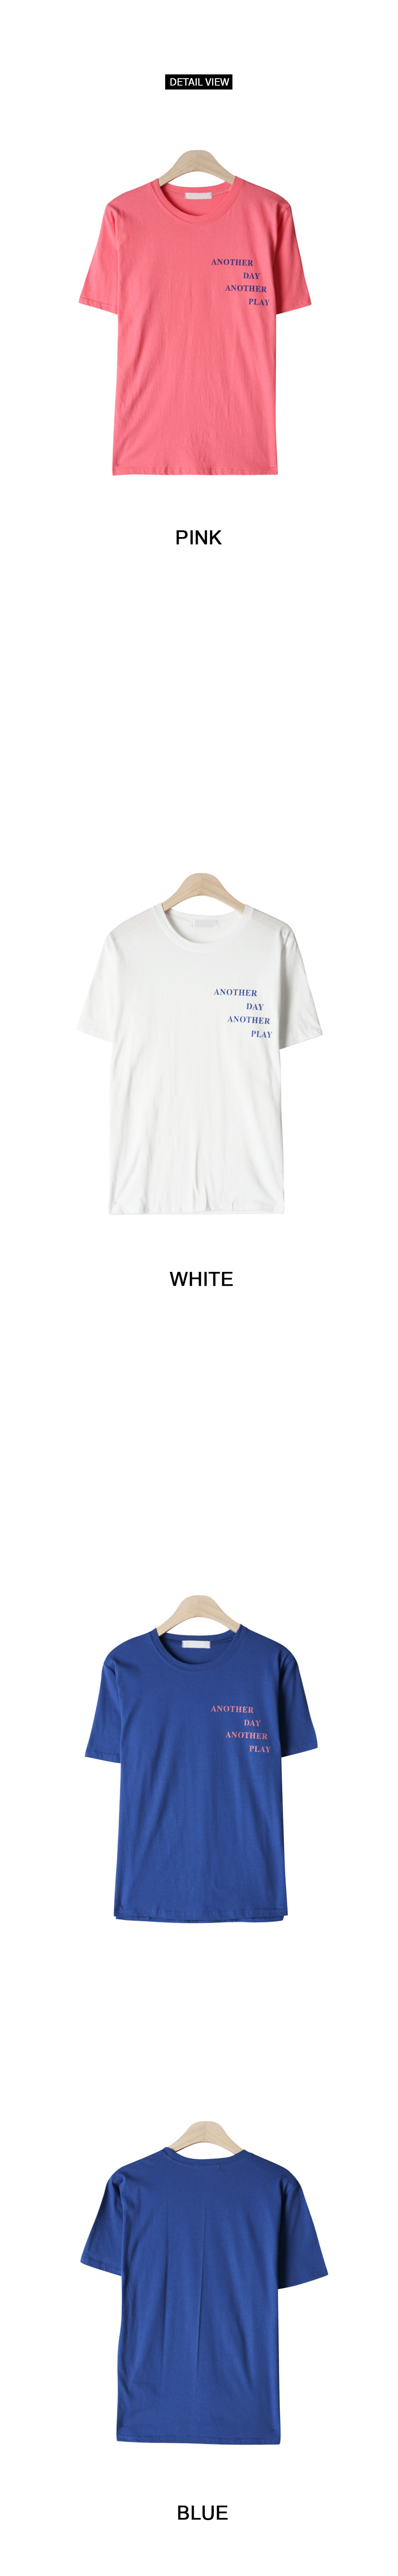 Rounded short-sleeved polo shirt